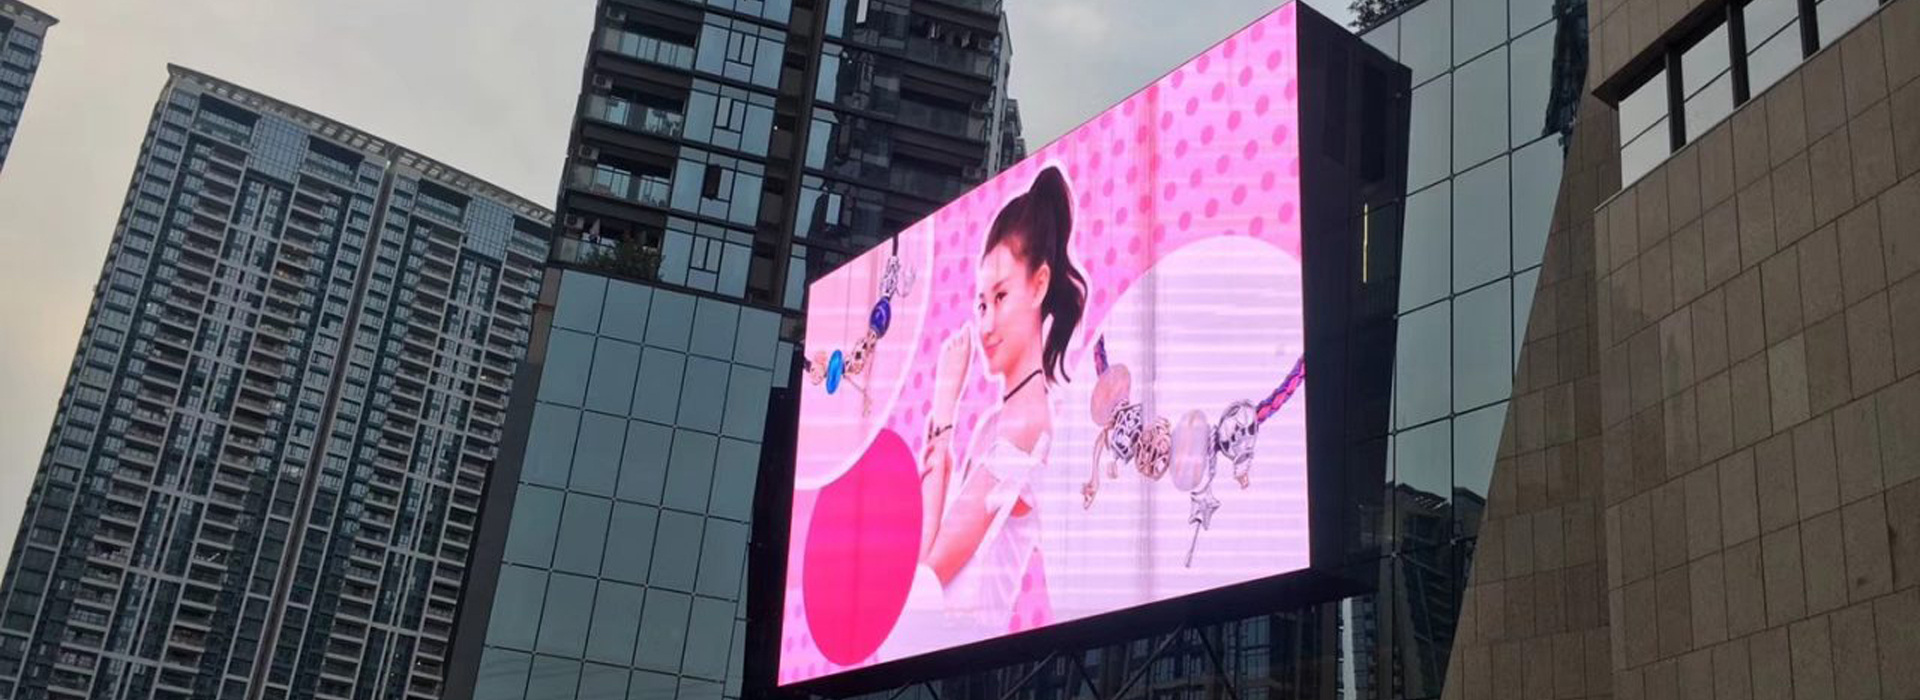 Outdoor-Wall-Mount-LED-Display-Screen